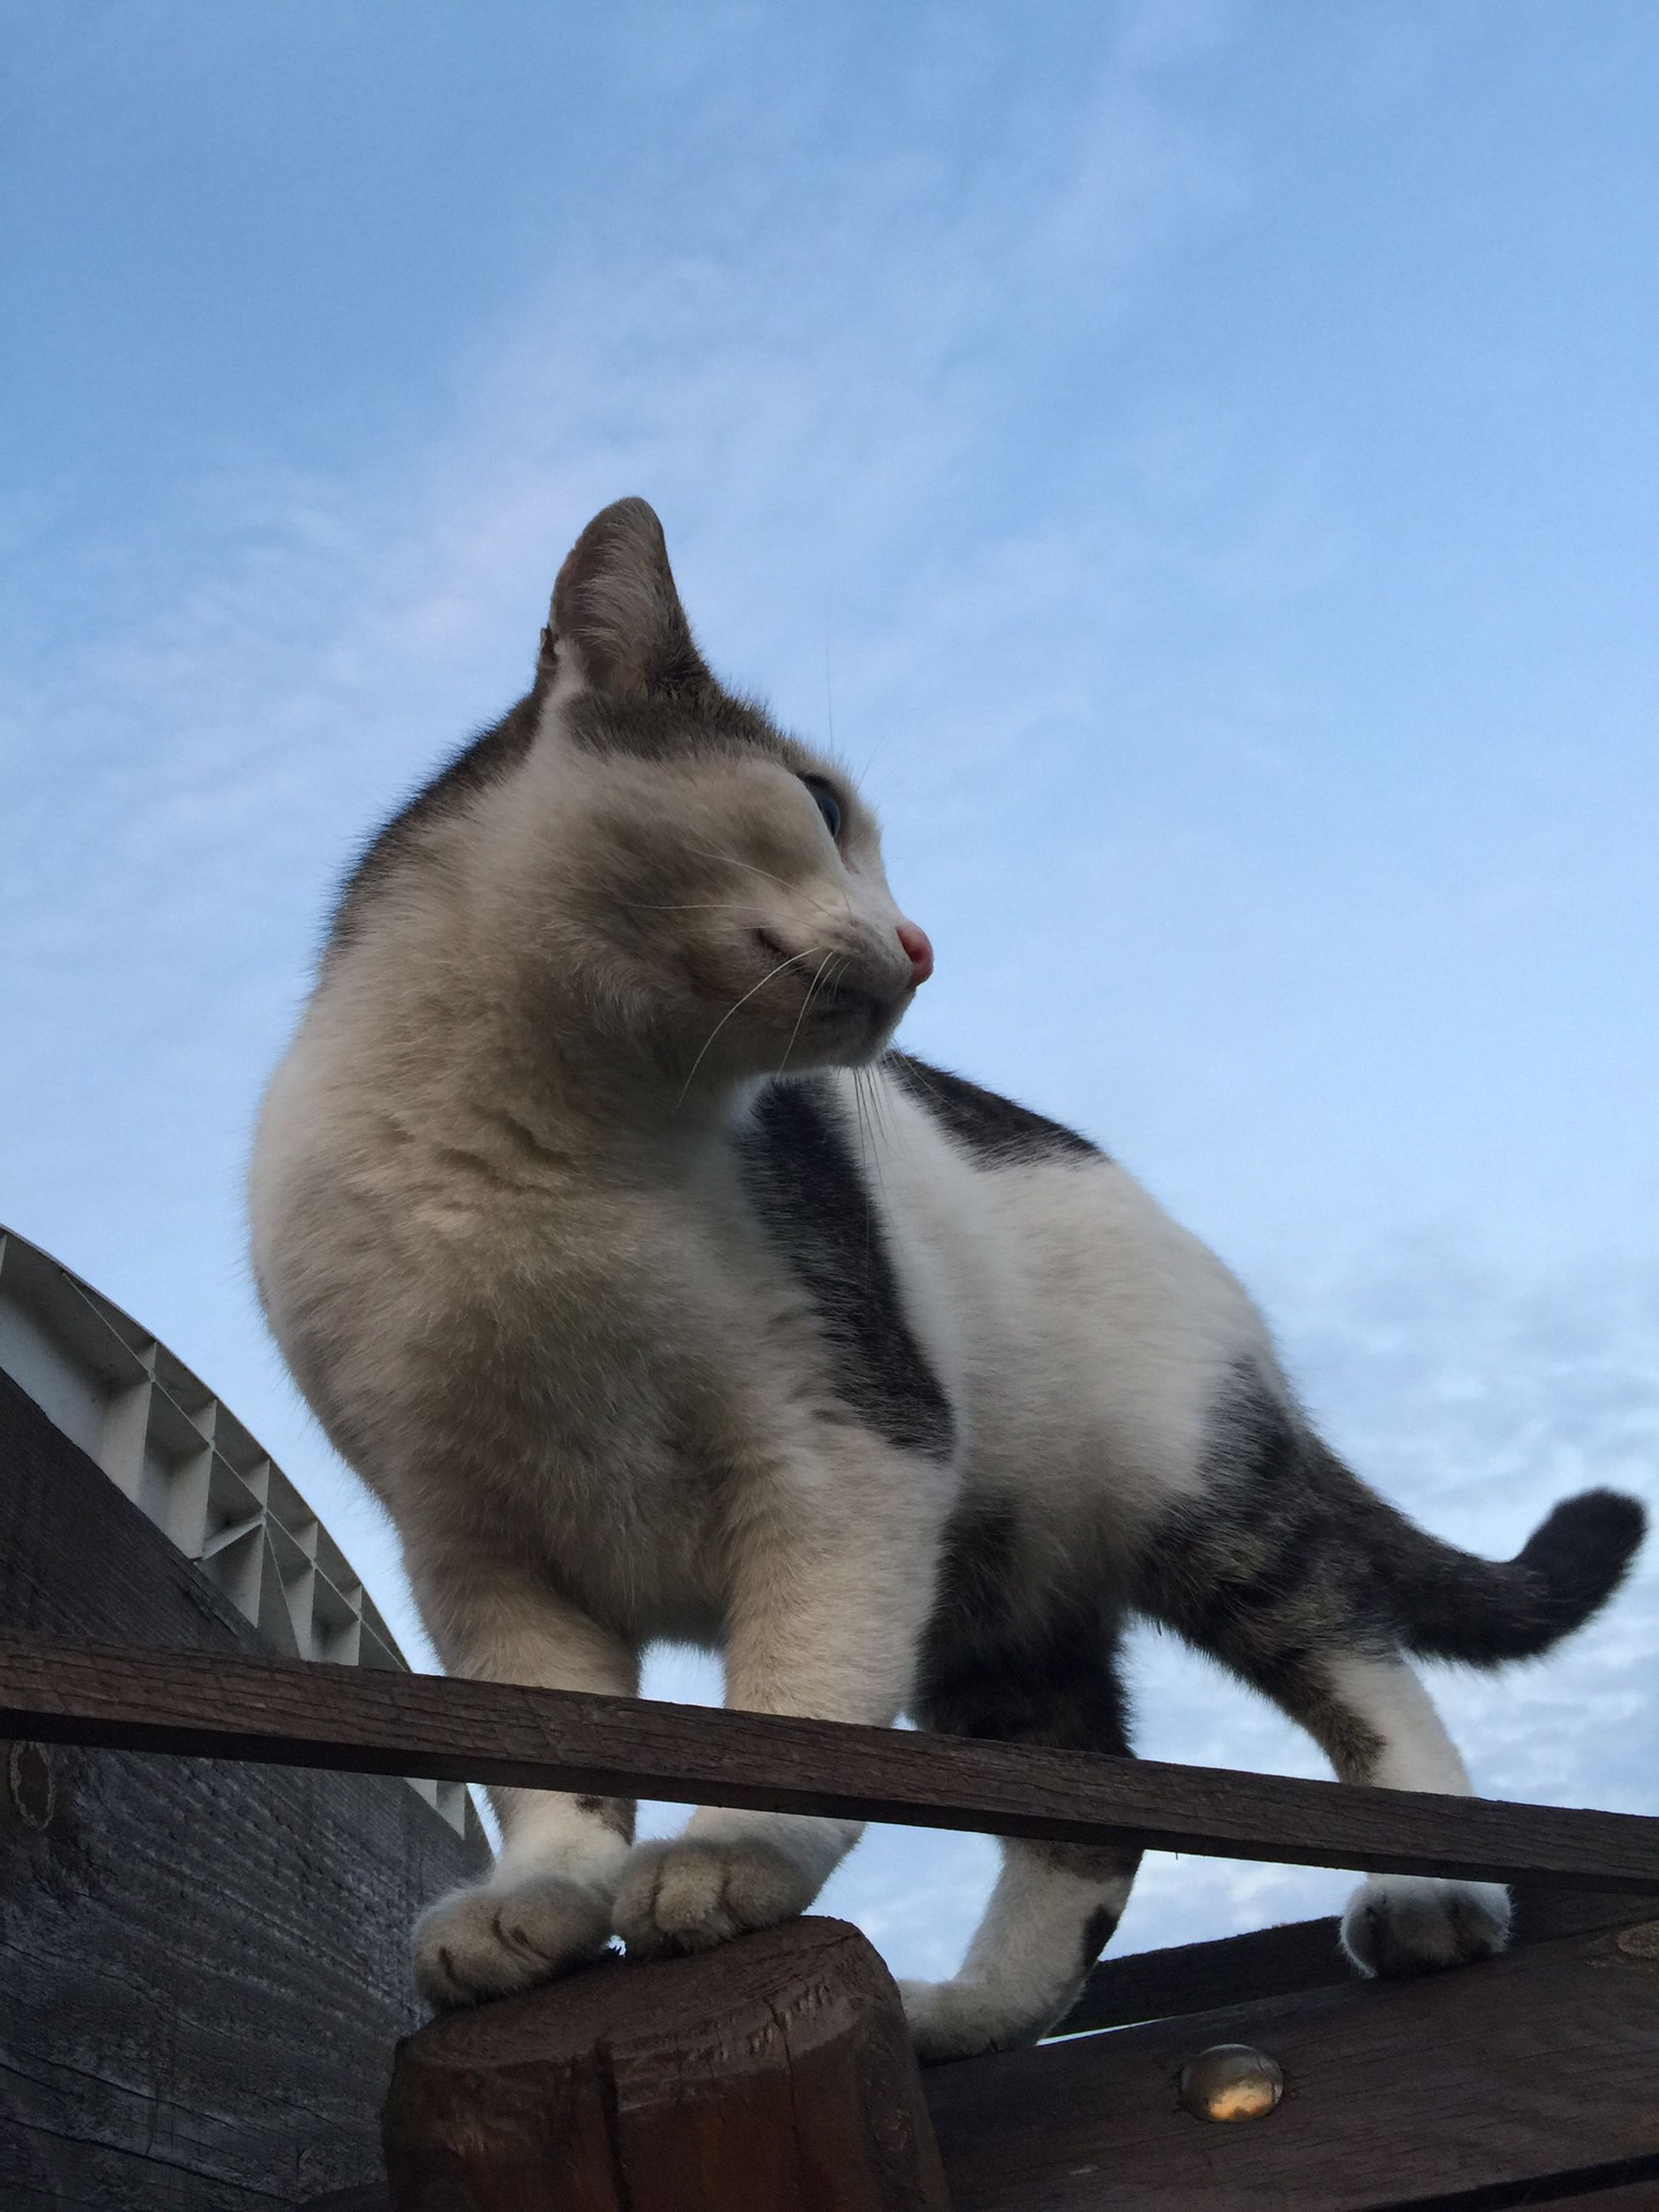 animal themes, one animal, mammal, sky, domestic animals, domestic cat, pets, low angle view, cat, railing, built structure, feline, outdoors, no people, day, looking away, architecture, cloud - sky, nature, side view